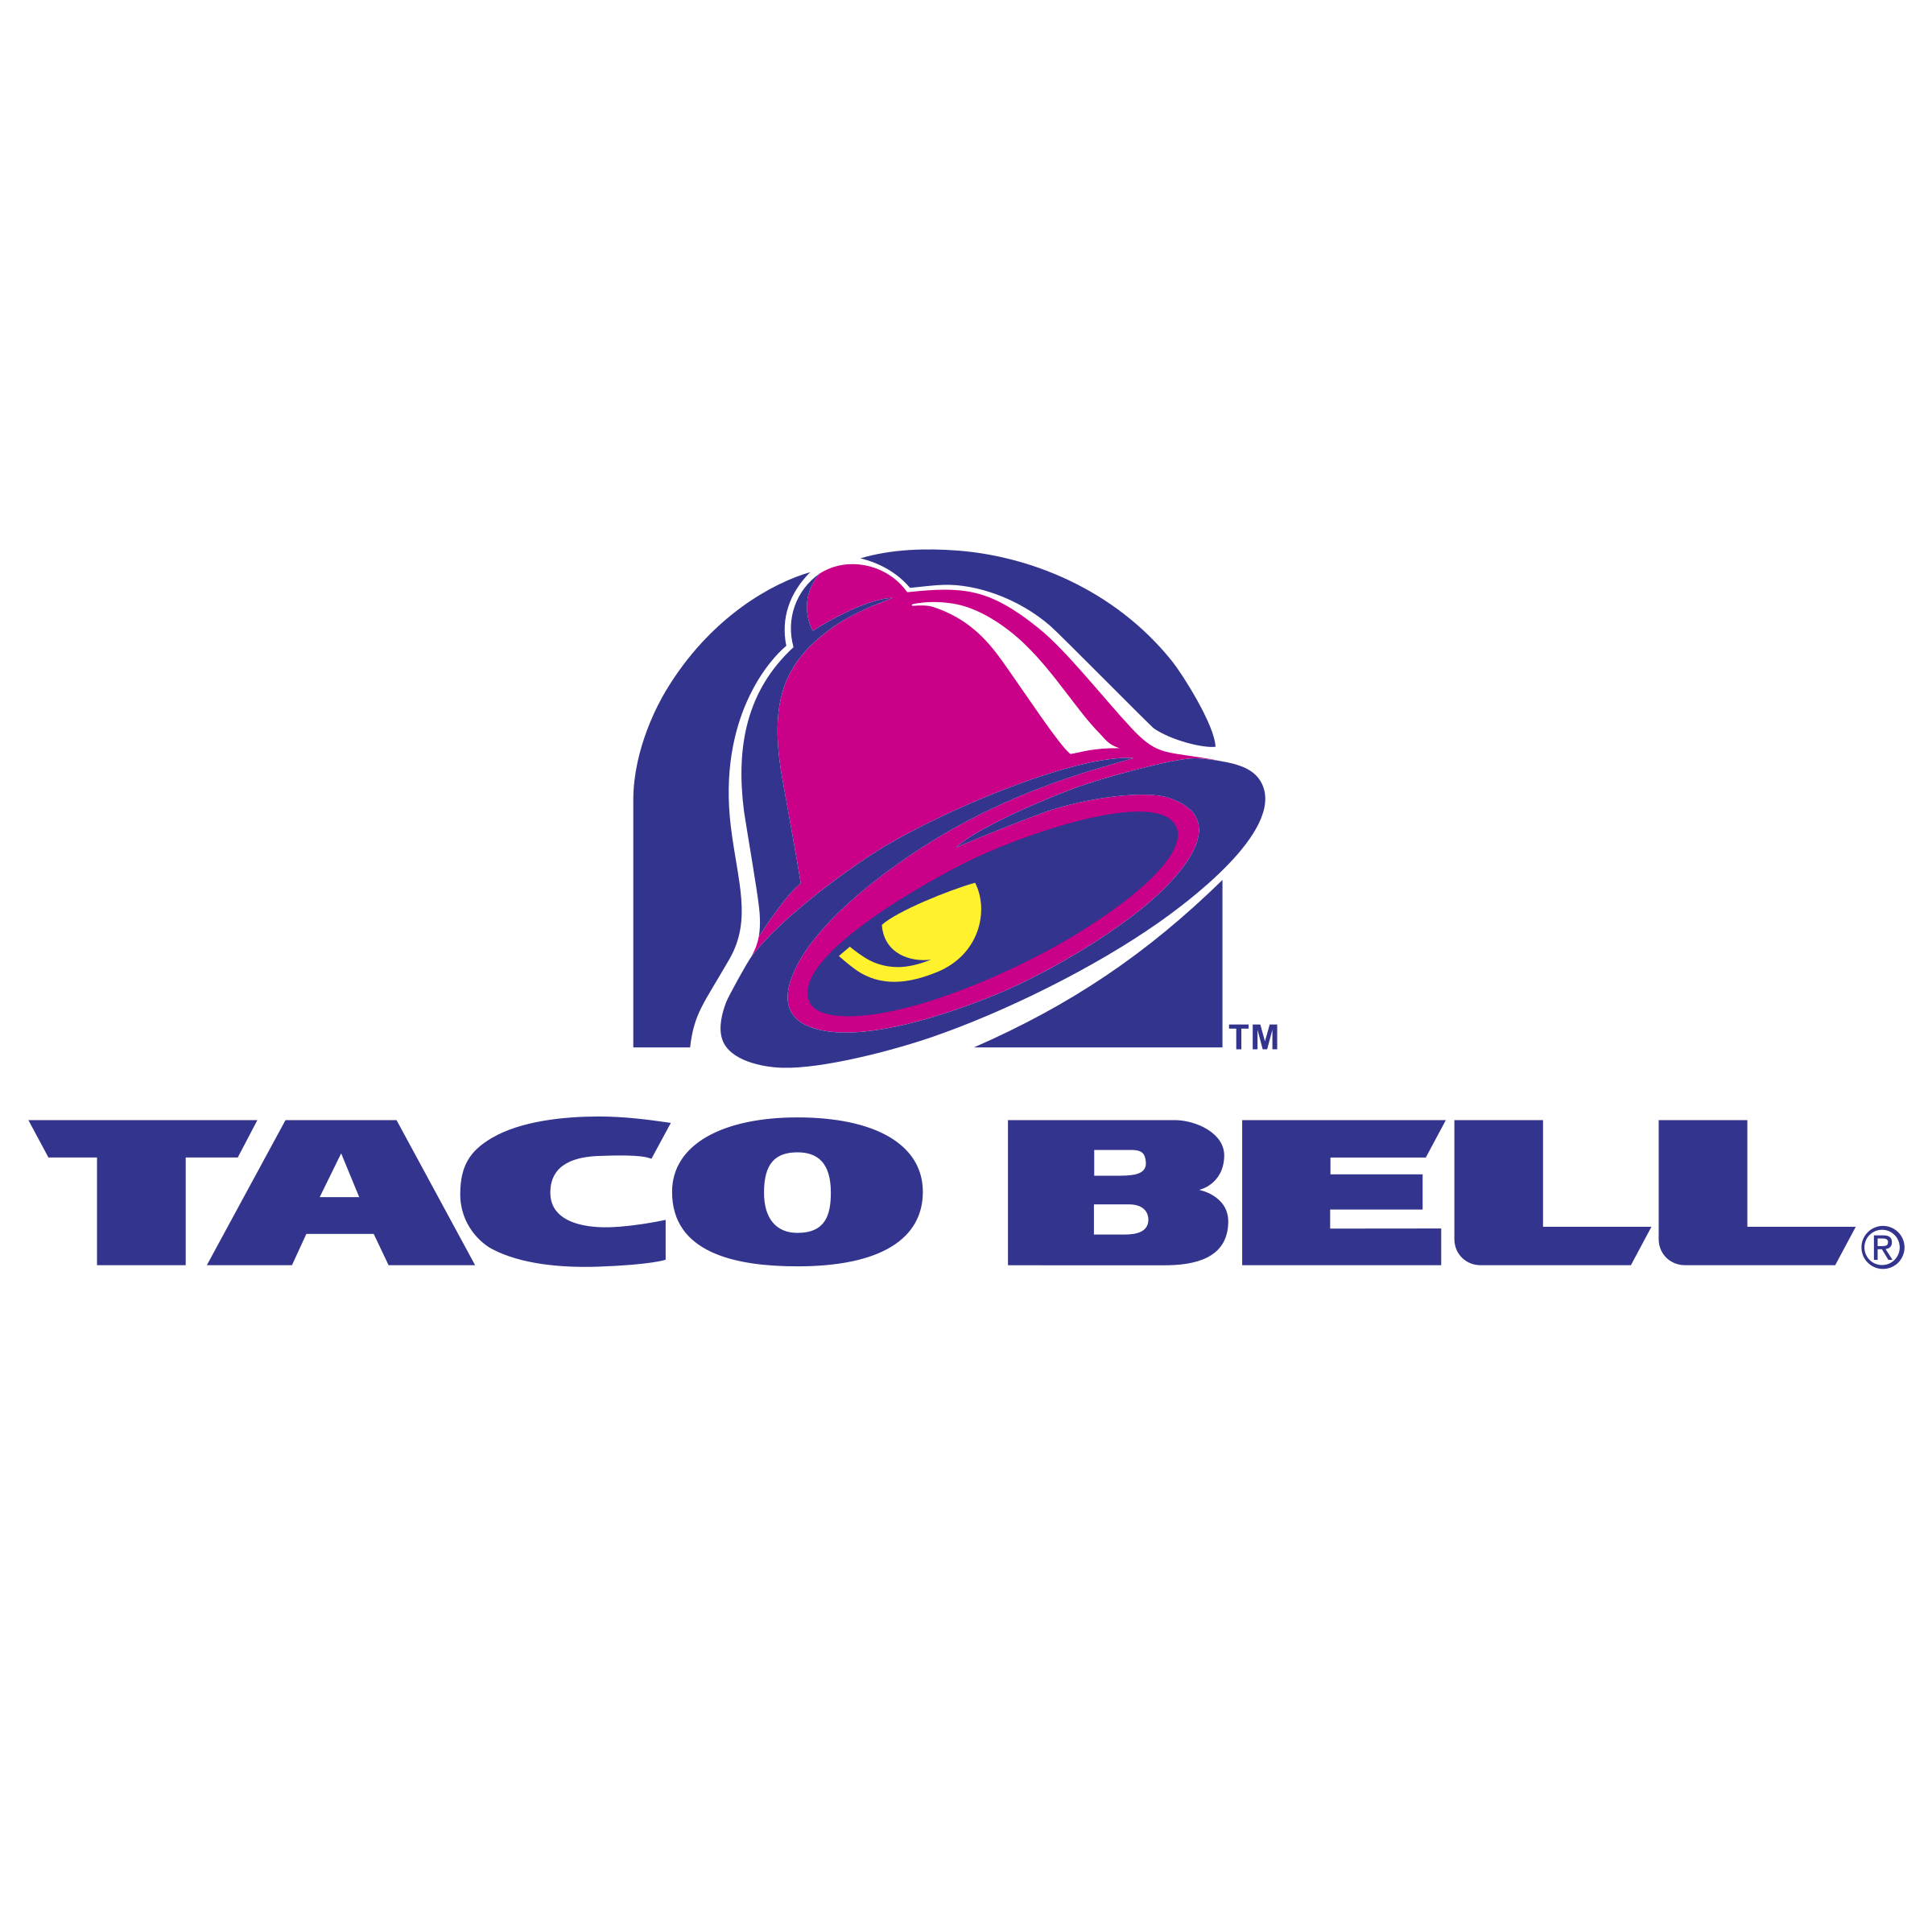 Taco Bell Logo - Taco Bell Logo PNG Transparent & SVG Vector - Freebie Supply